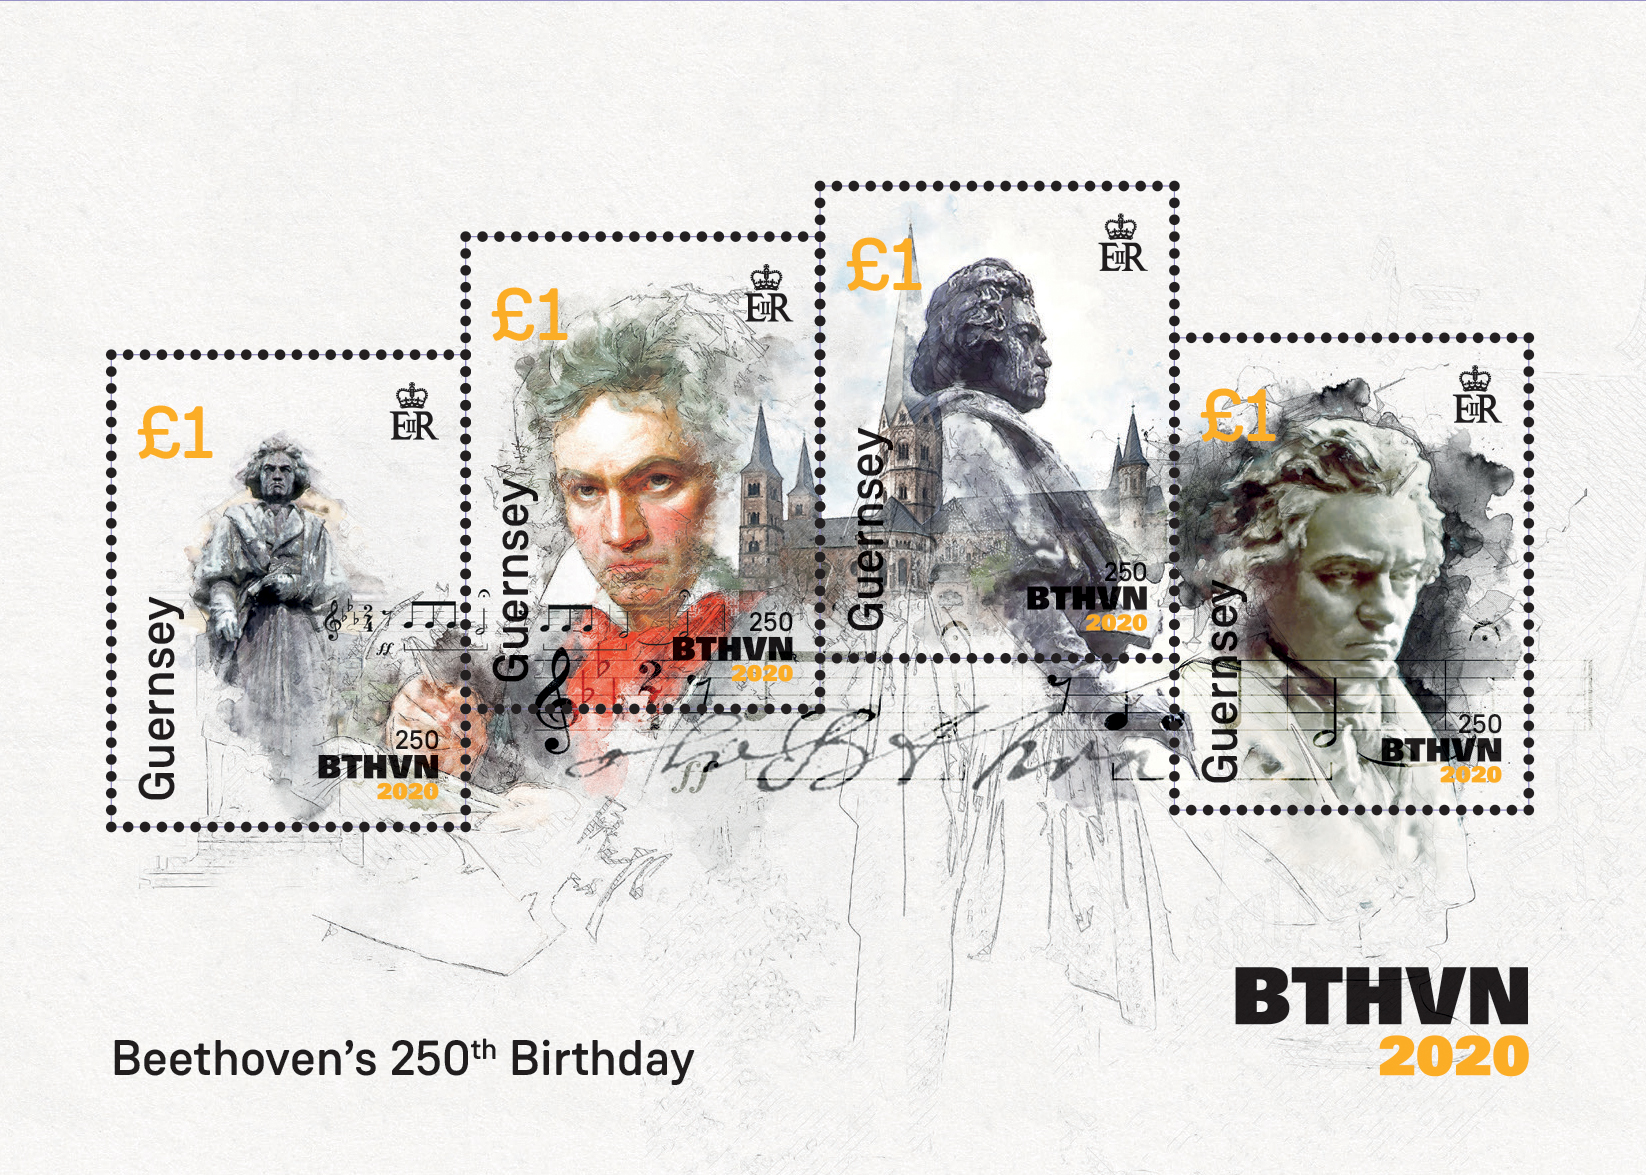 Final commemorative stamp for Beethoven's 250th Anniversary